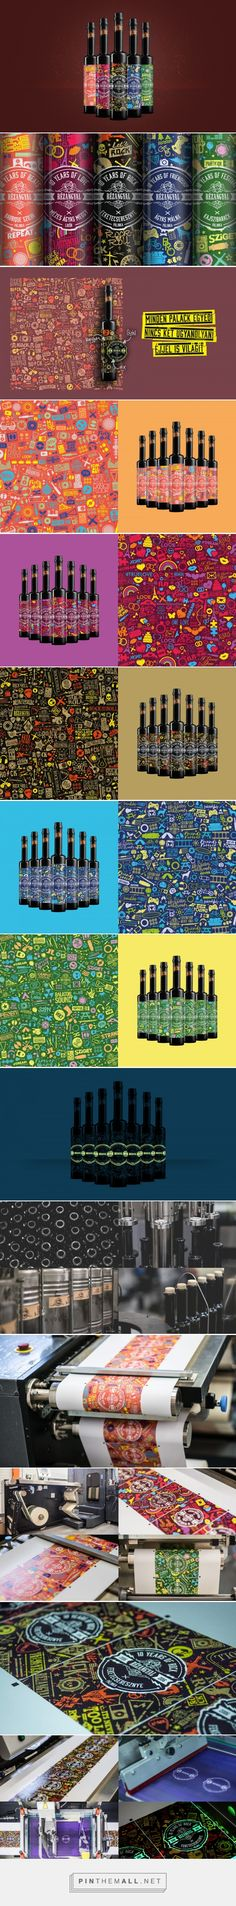 10 Years Of Rézangyal - Packaging of the World - Creative Package Design Gallery - http://www.packagingoftheworld.com/2016/09/10-years-of-rezangyal.html